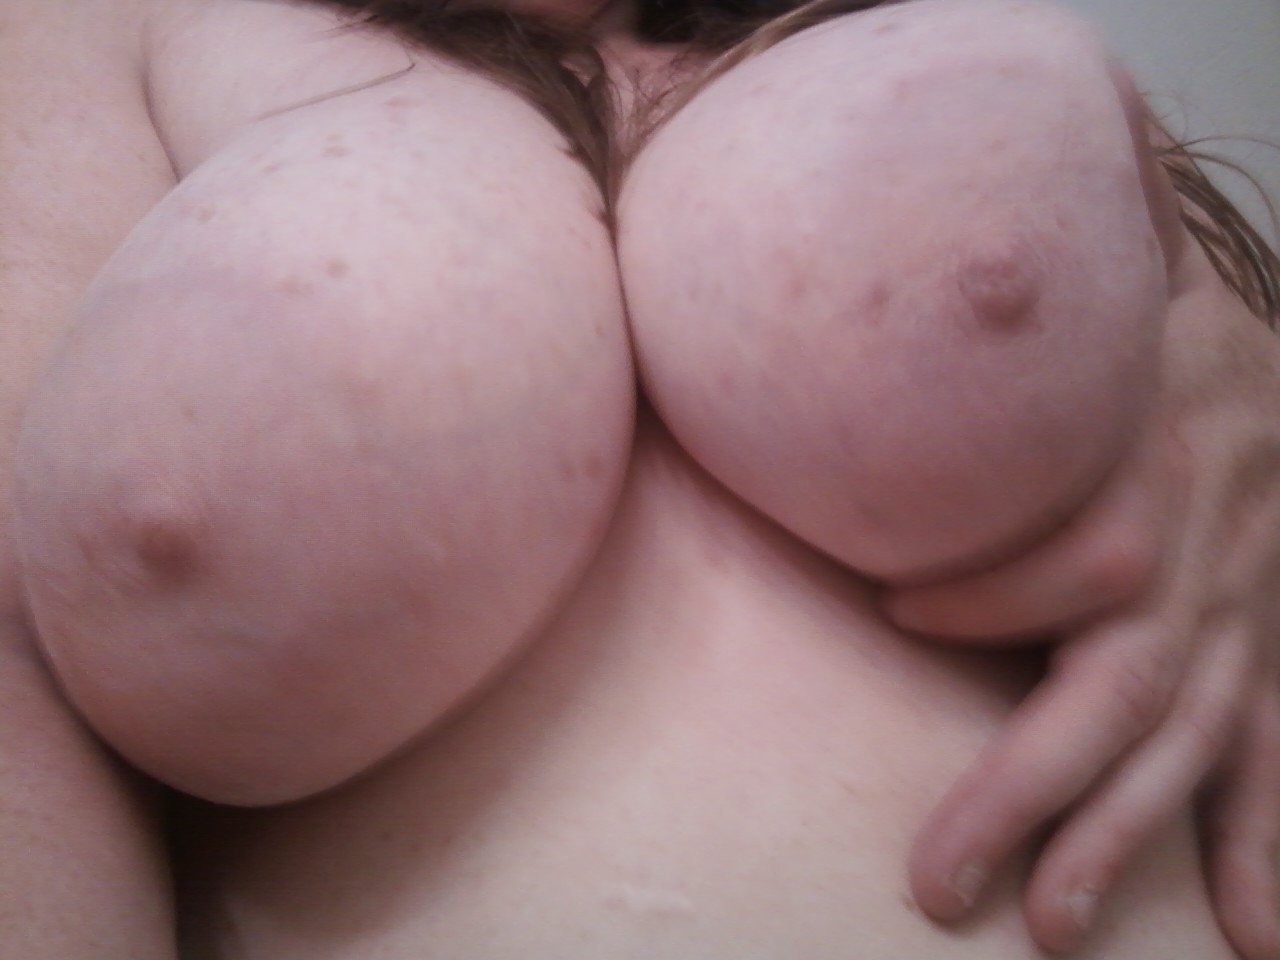 small women with large tits